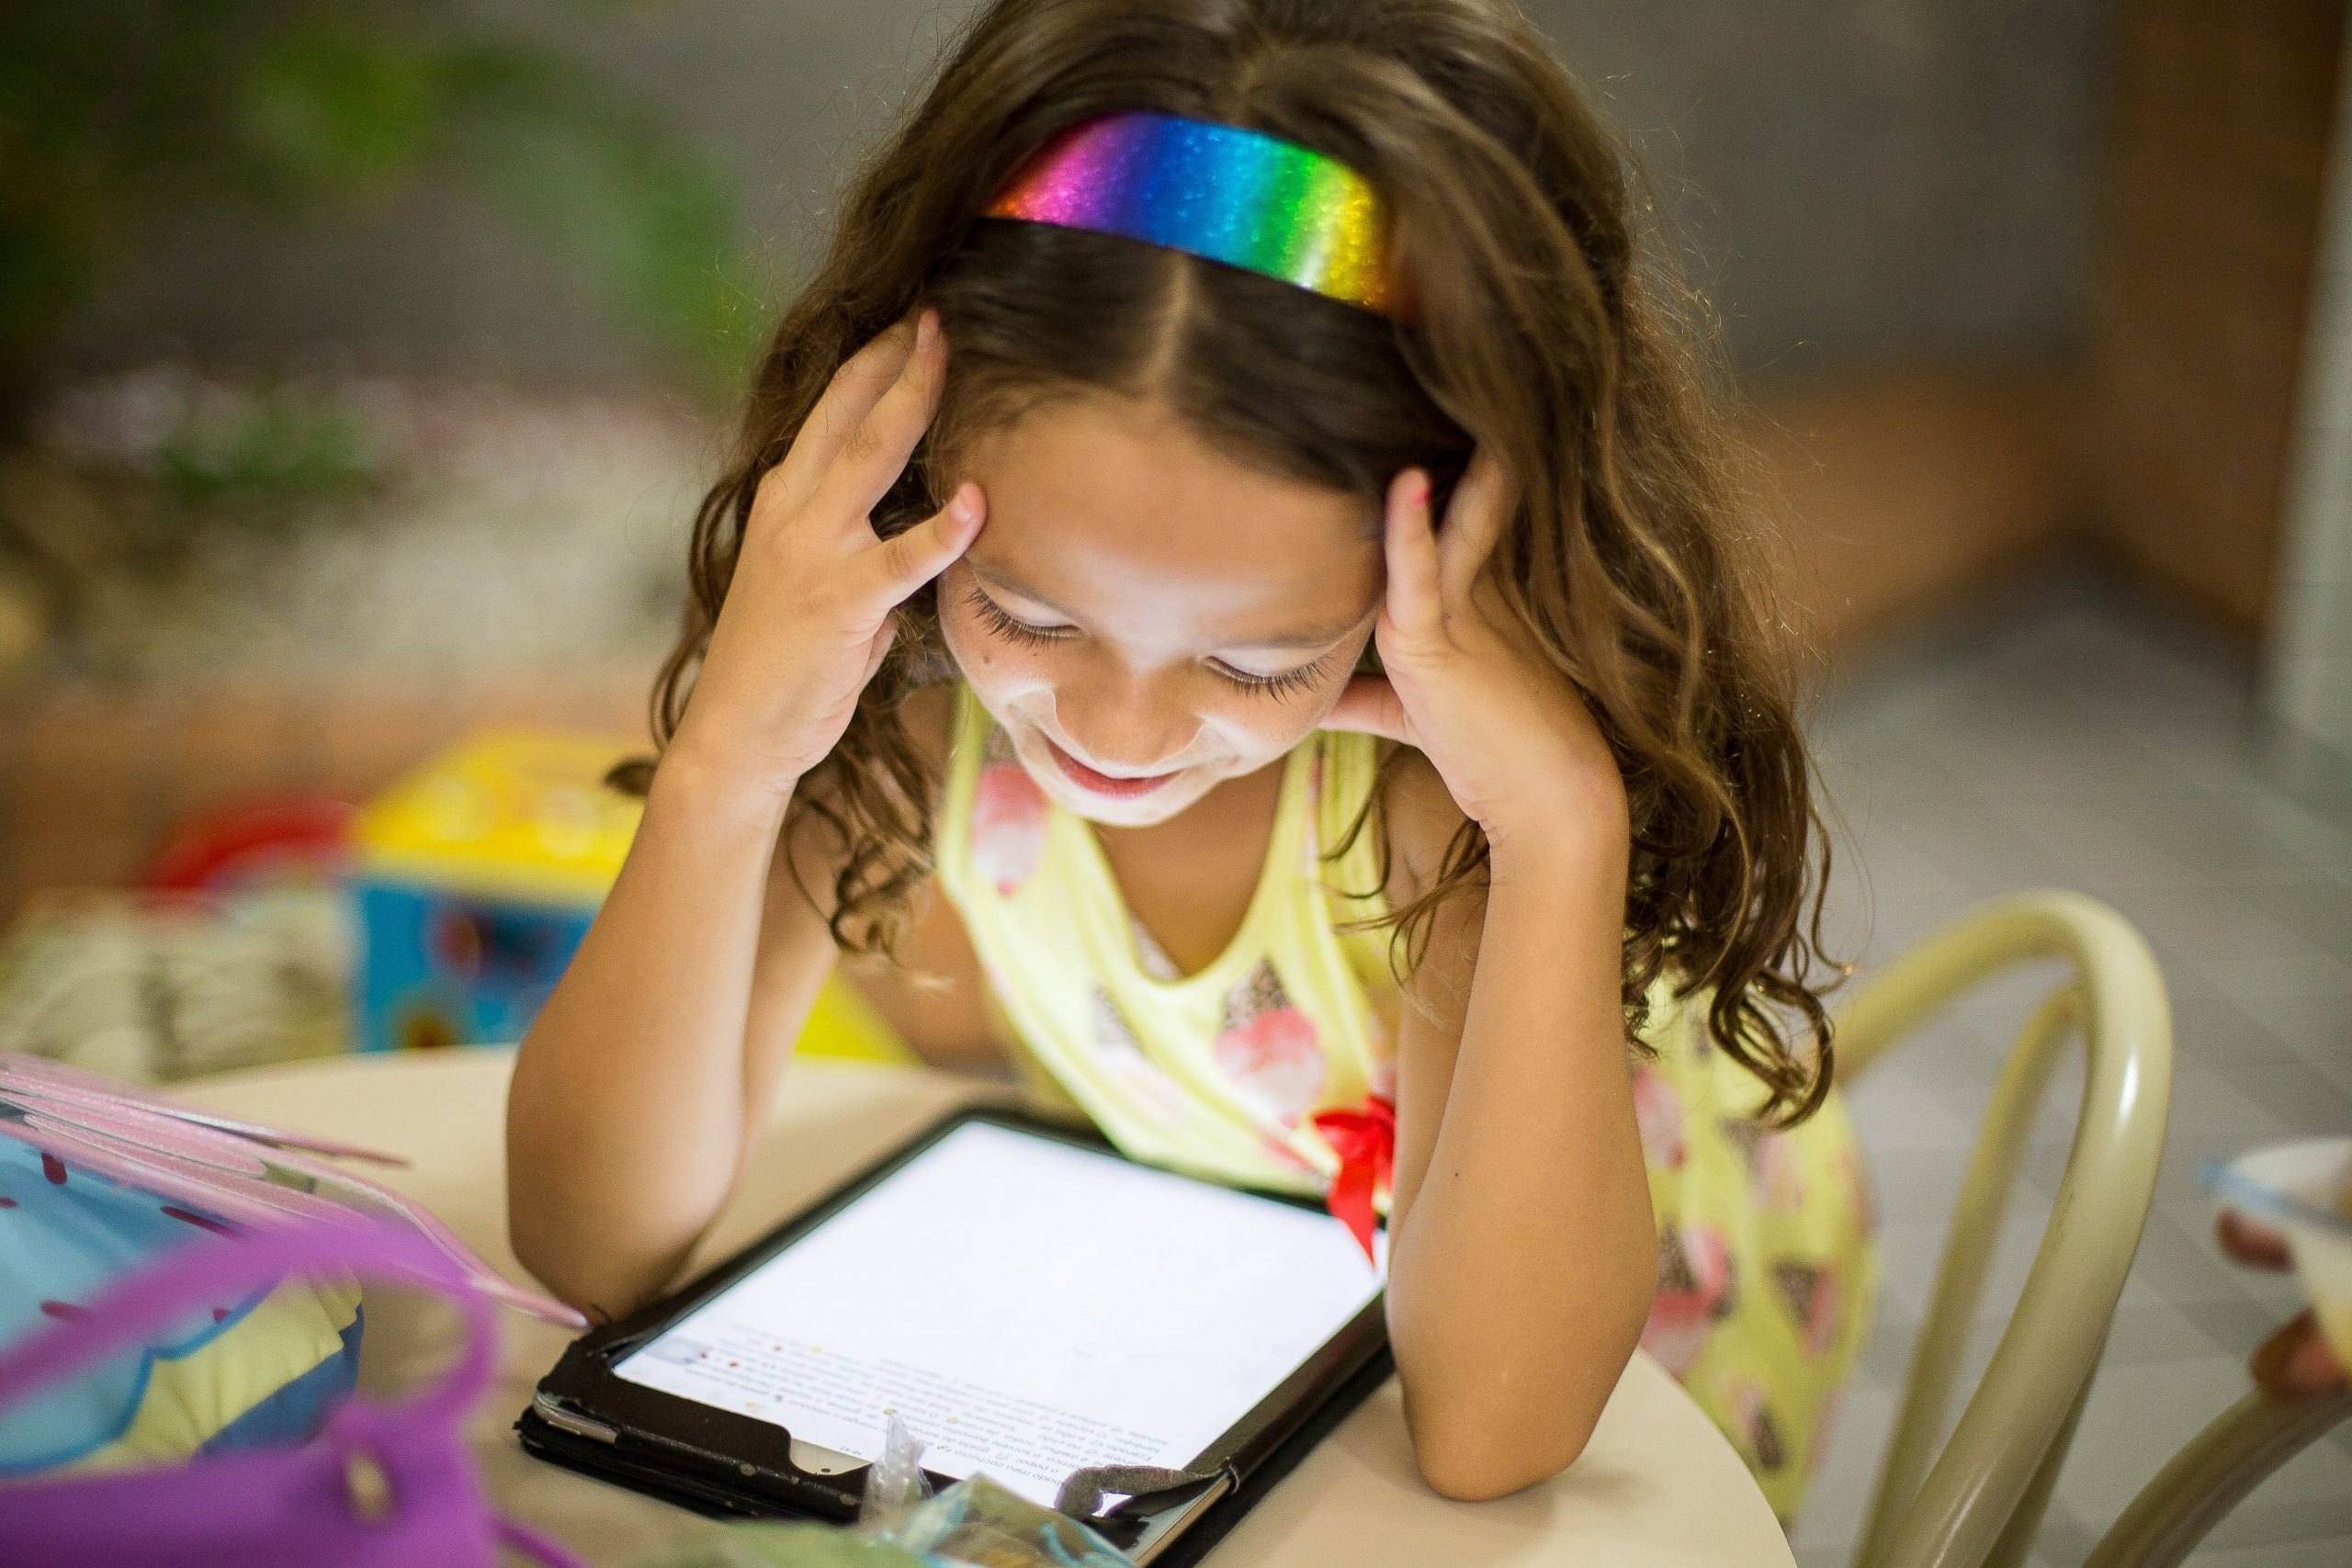 Child looks at a tablet